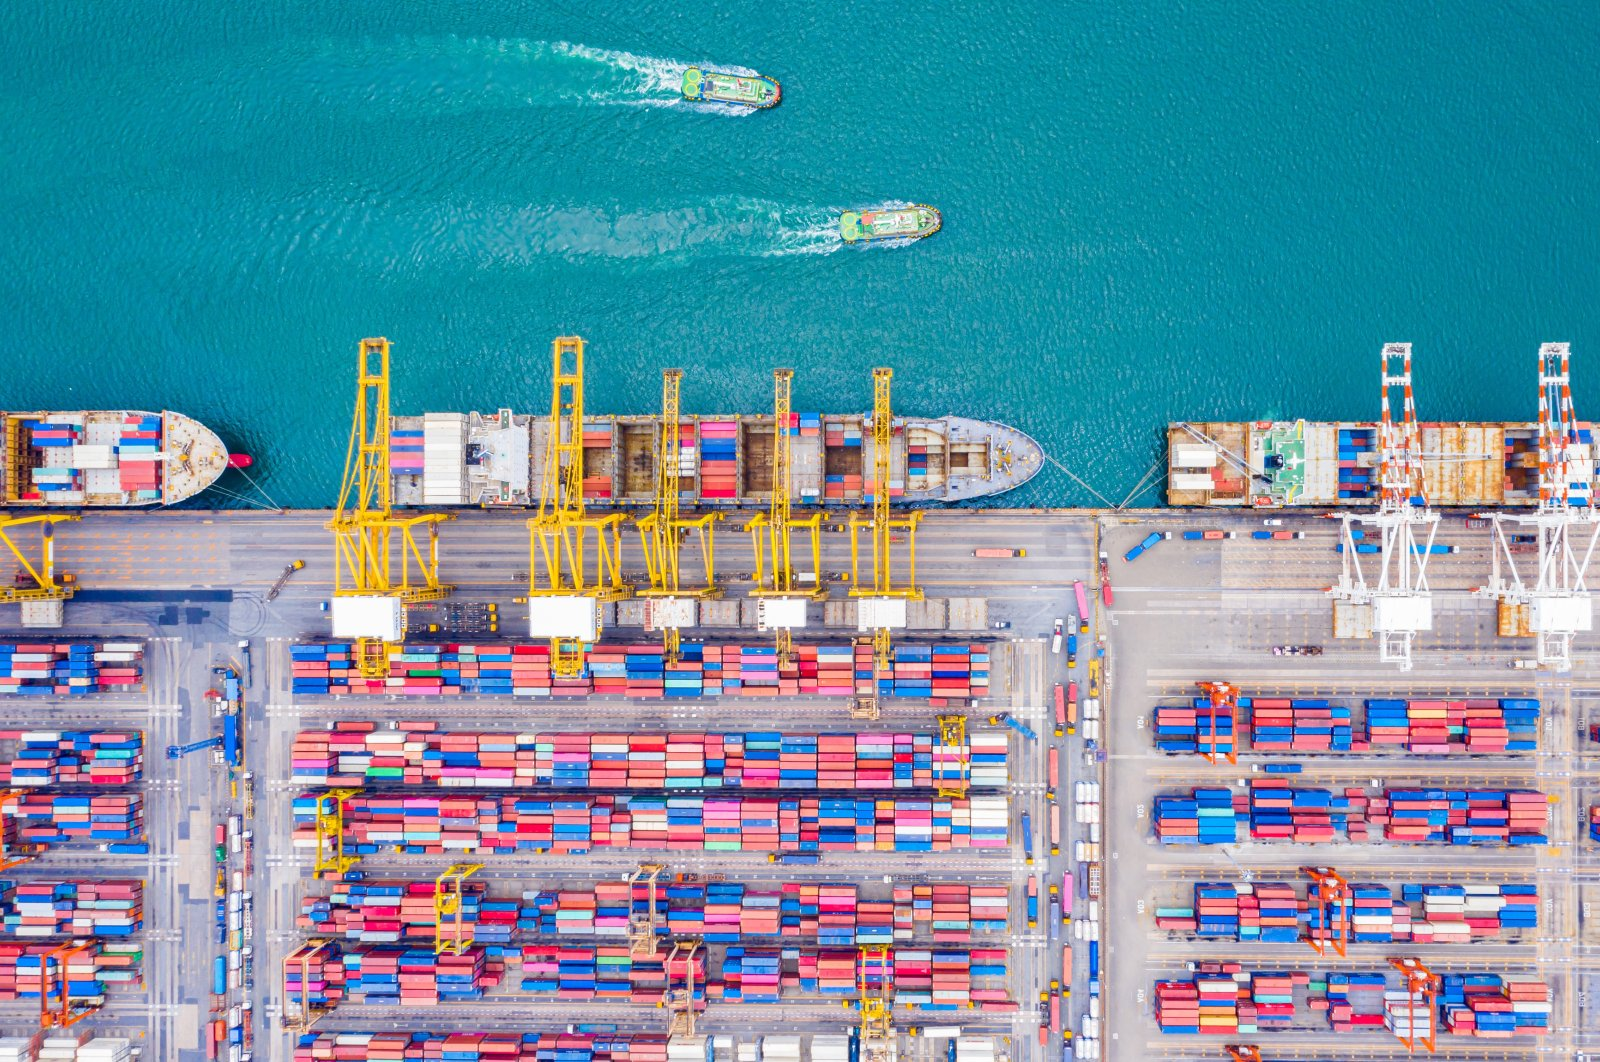 Turkey's exports rose 34.3% year-on-year to reach $9.1 billion in first 23 days of June. (IHA Photo)